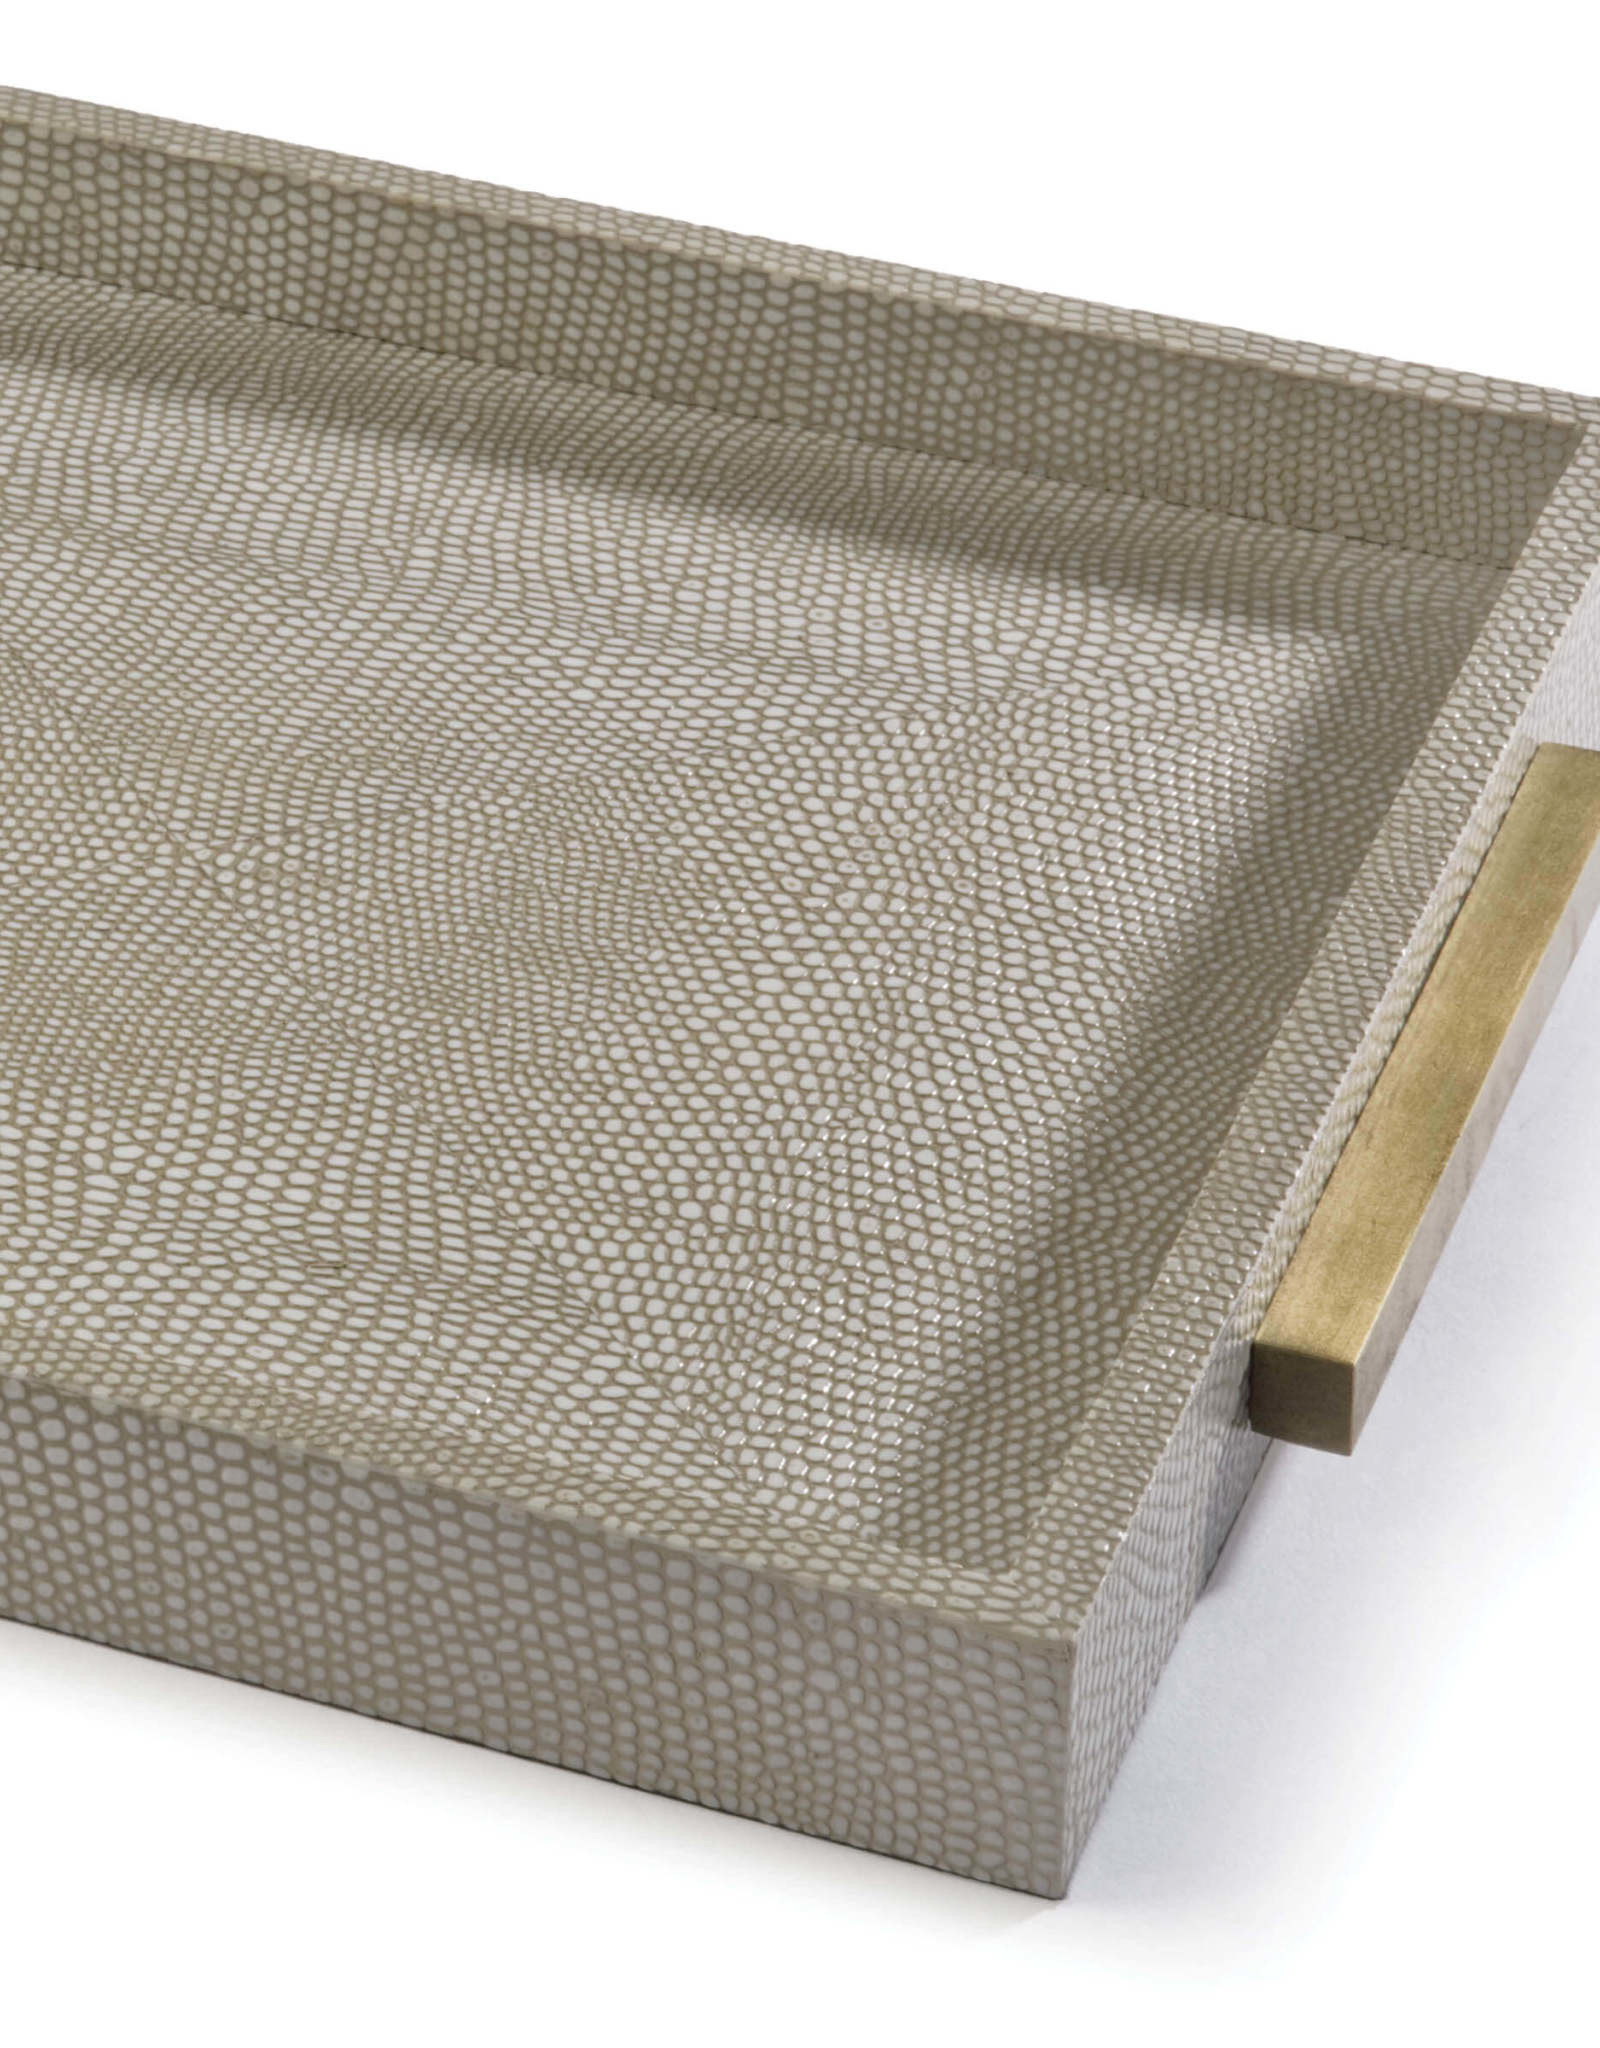 Regina Andrew Design Square Shagreen Boutique Tray (Ivory Grey Python)